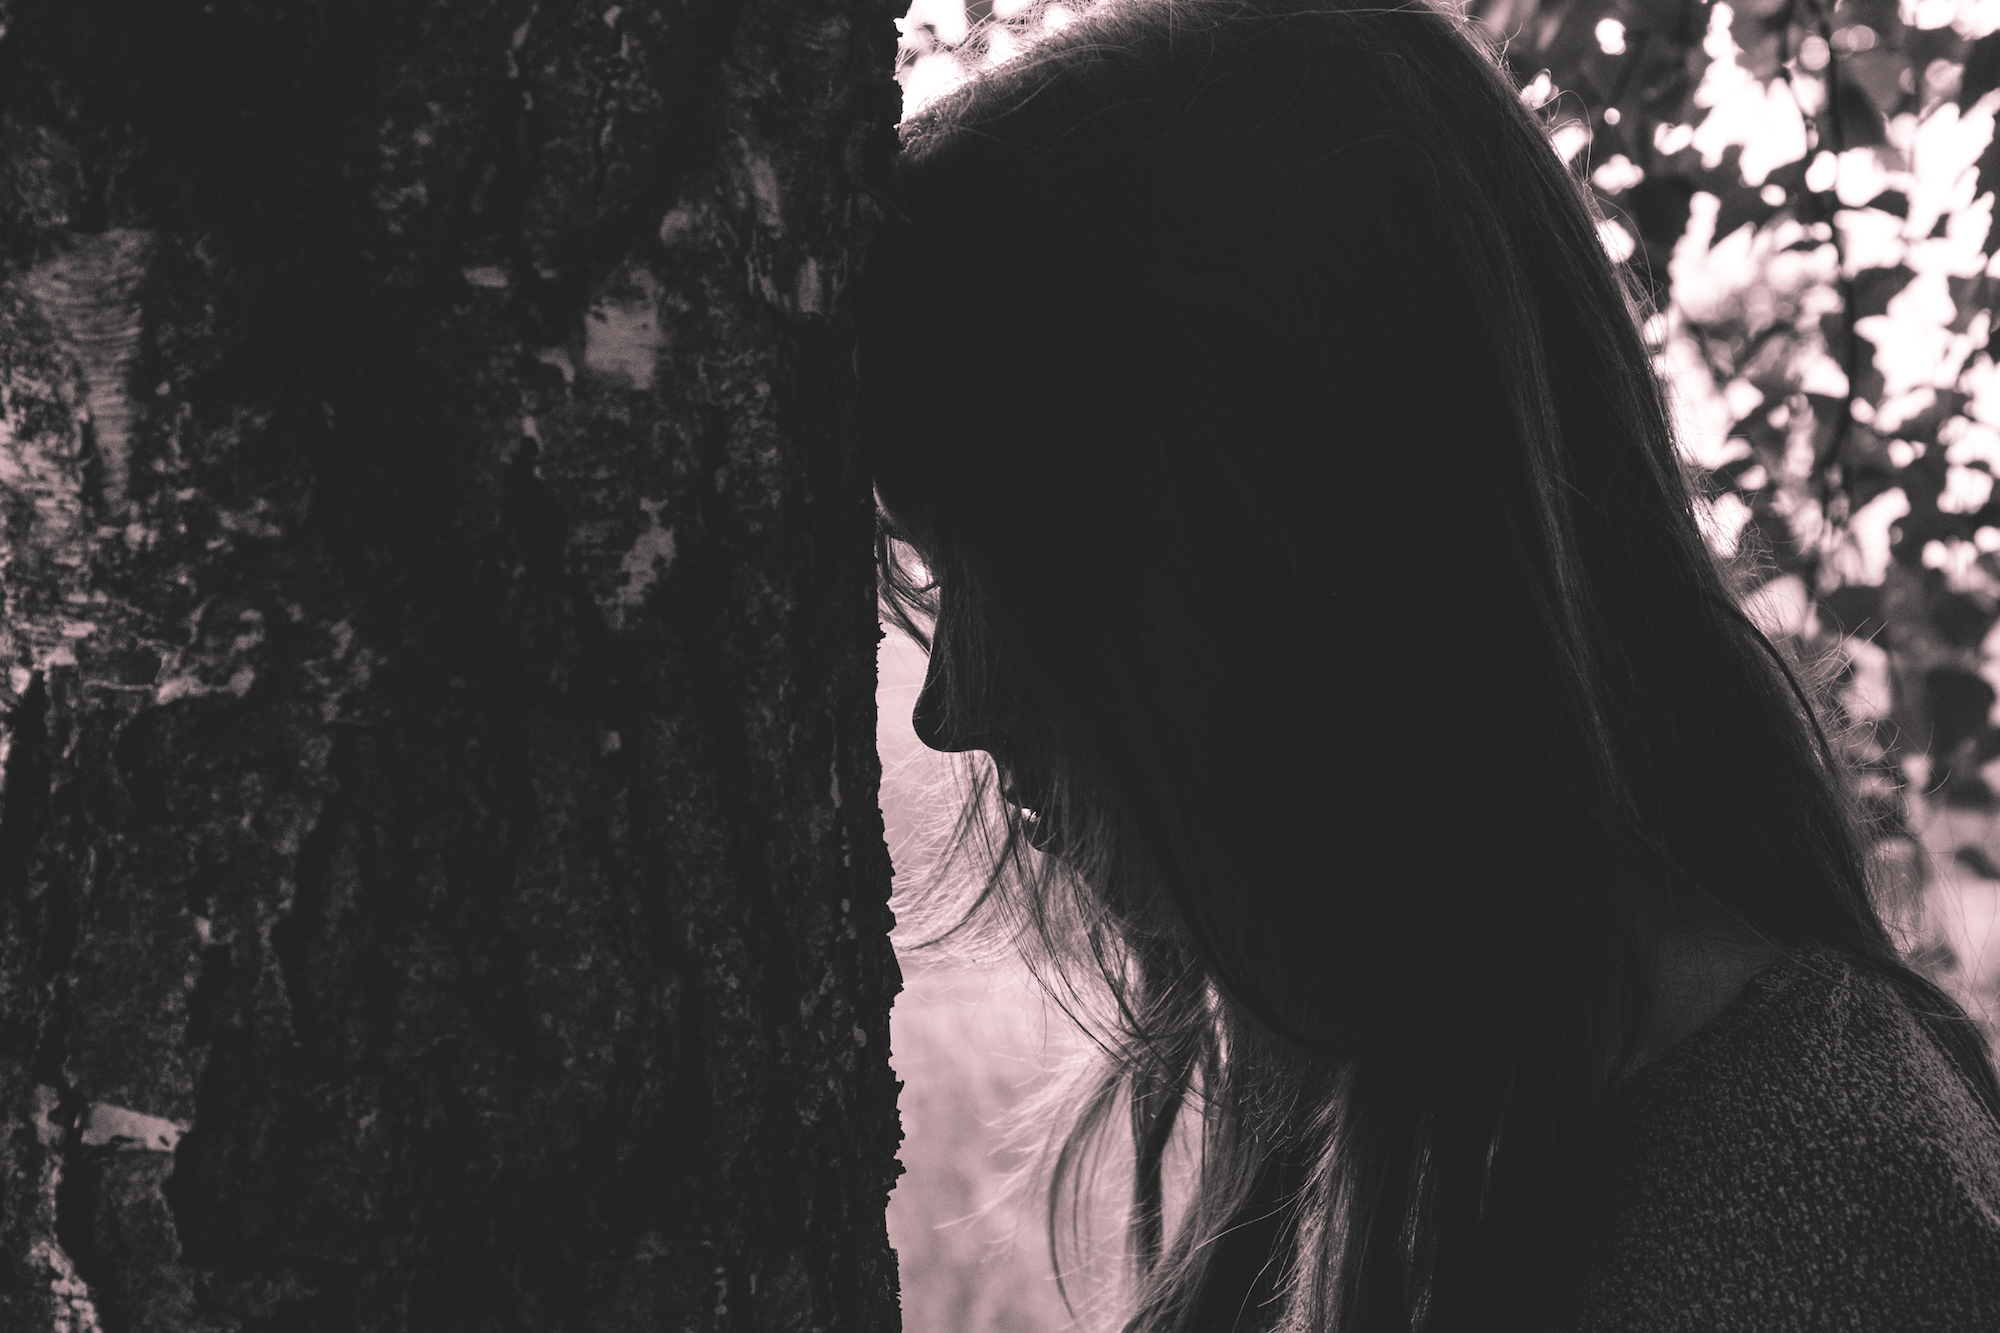 boss-fight-free-high-quality-stock-images-photos-photography-woman-head-tree